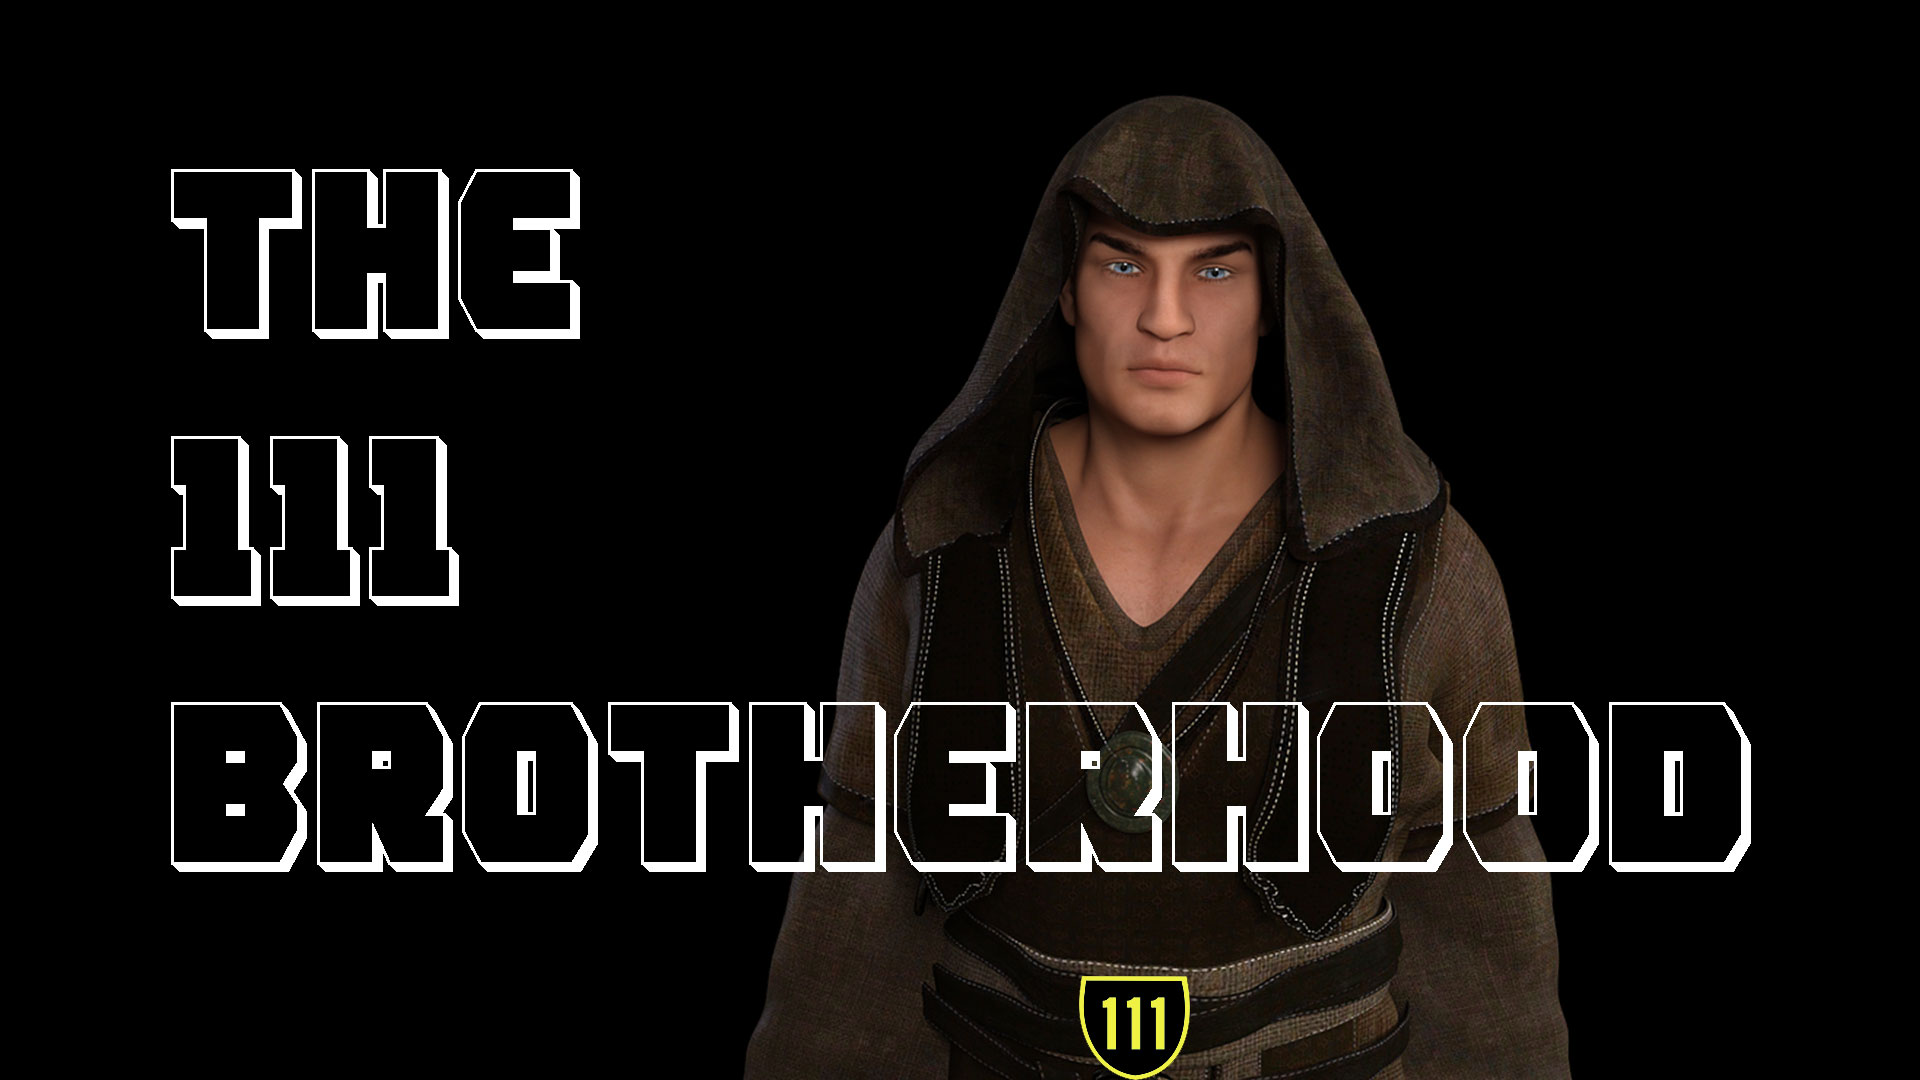 Ep. 105 - The 111 Brotherhood.jpg